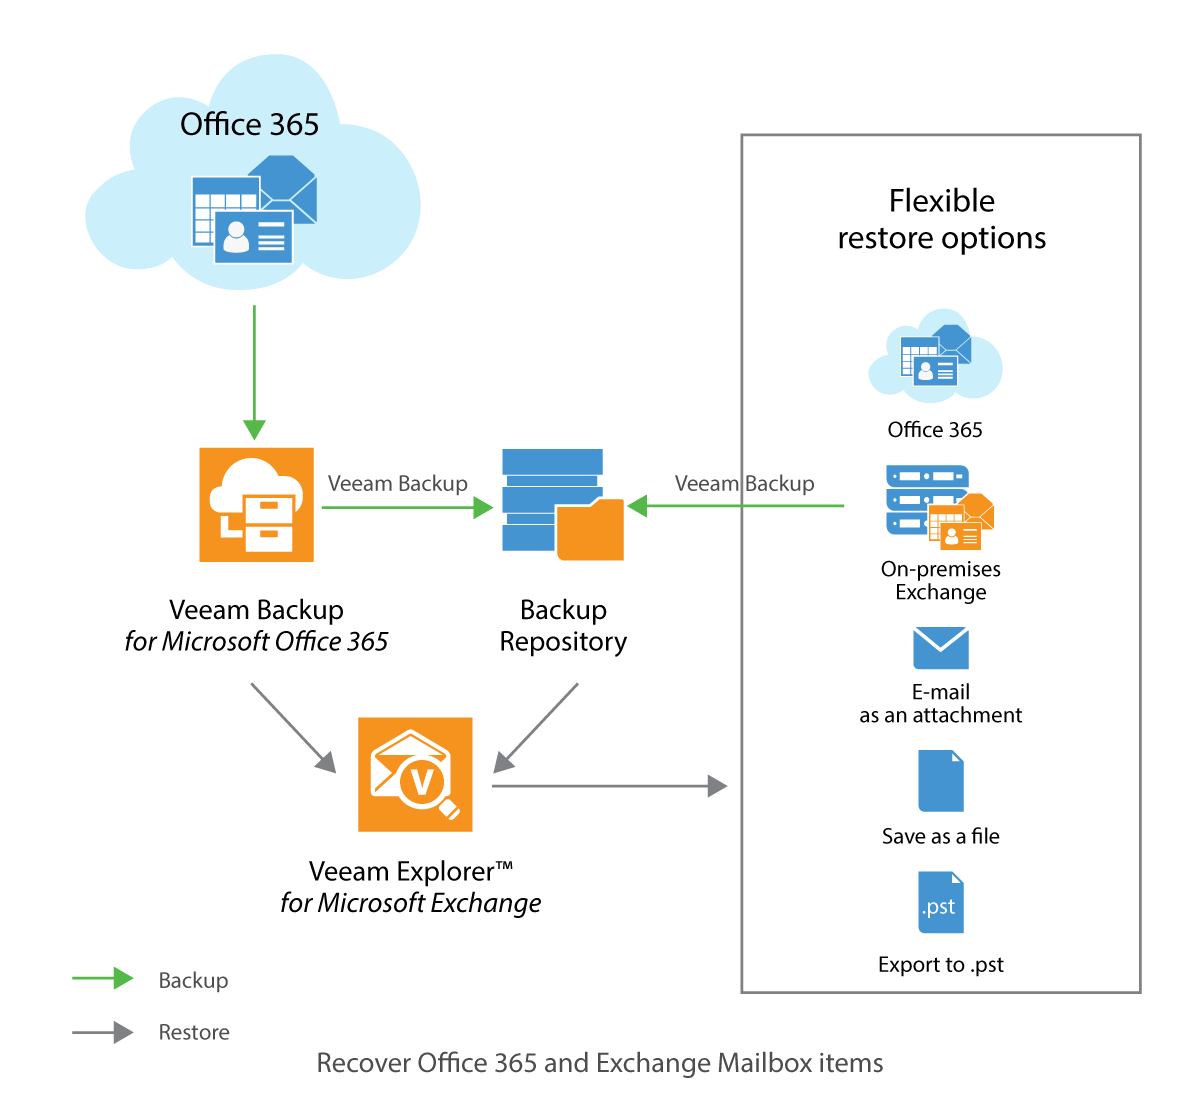 Backup Office 365 and on-premises Exchange to restore productivity to your users.